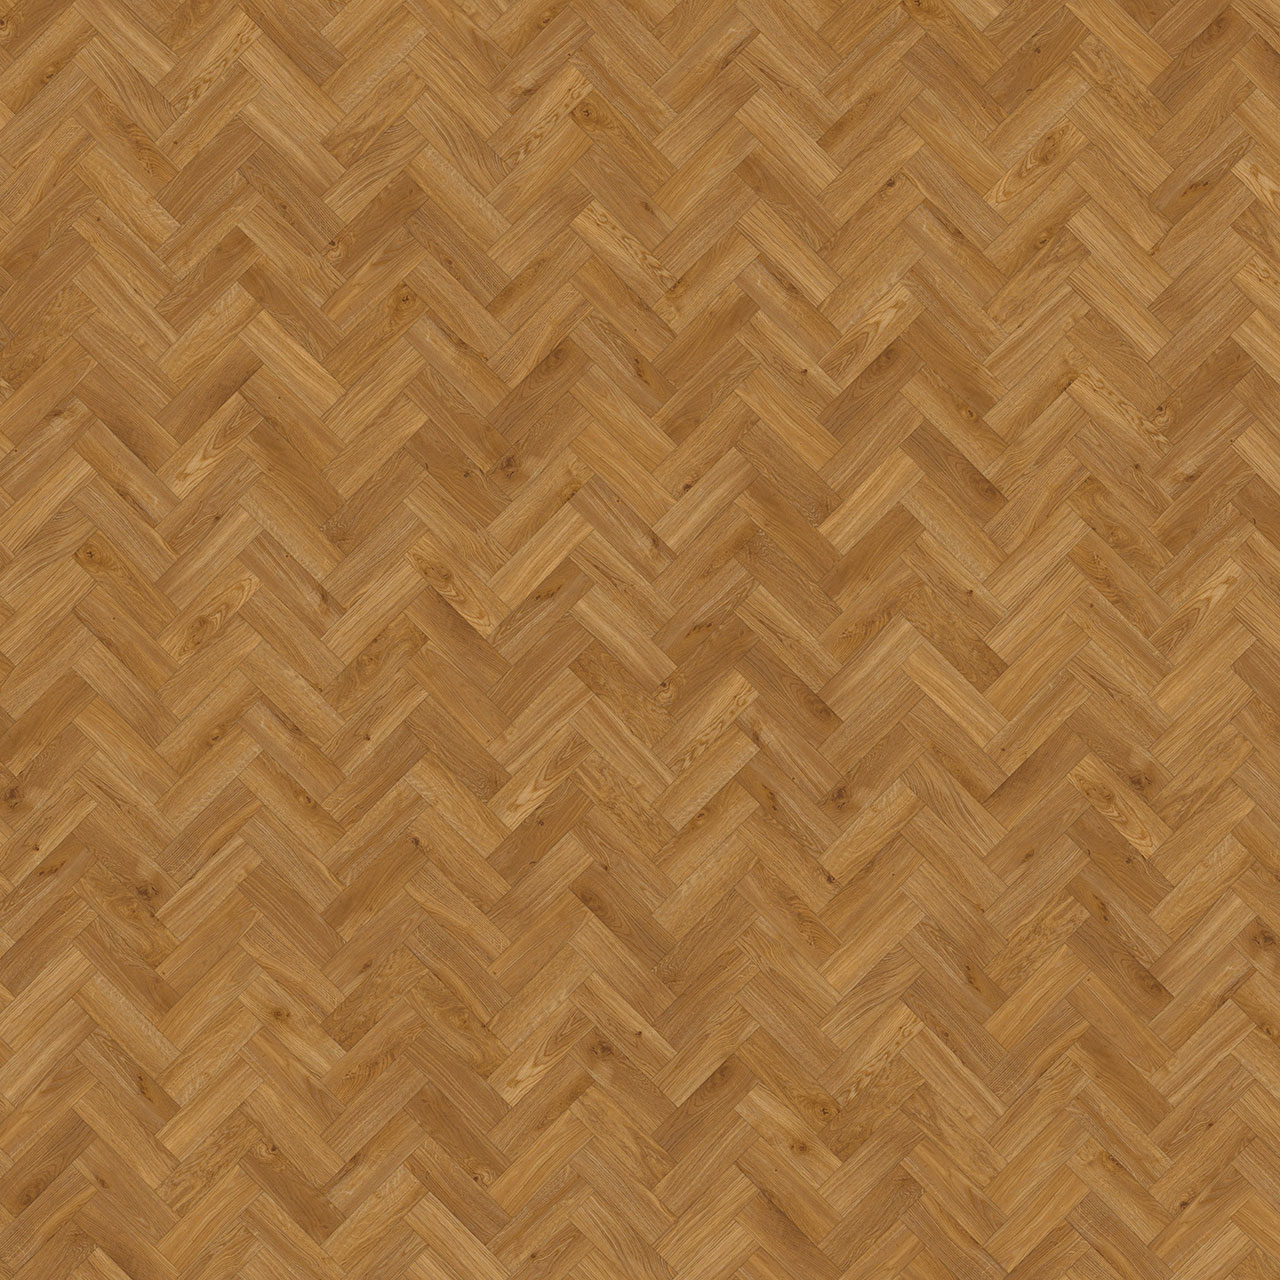 Amtico Spacia Traditional Oak Parquet 3x9 SS5W2514